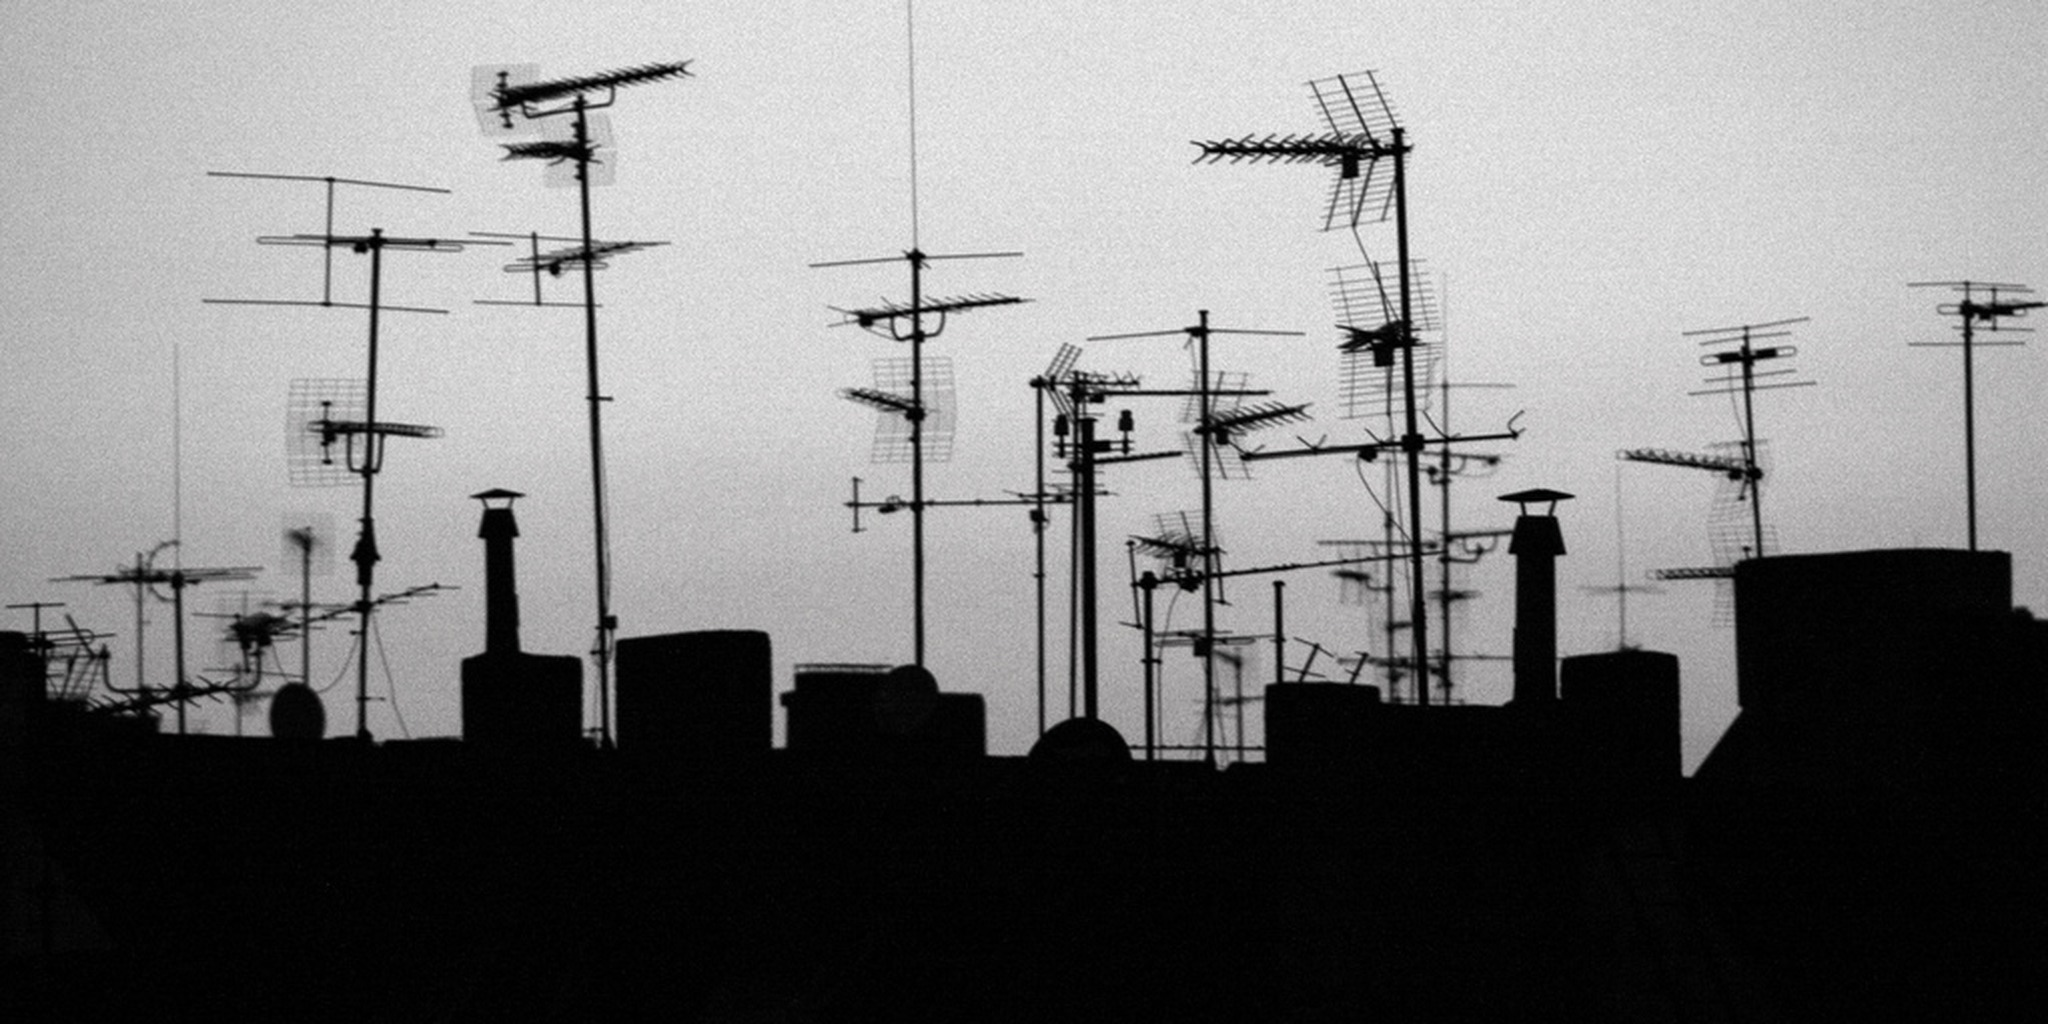 All sizes | Antennen 1 (Westend) | Flickr - Photo Sharing!